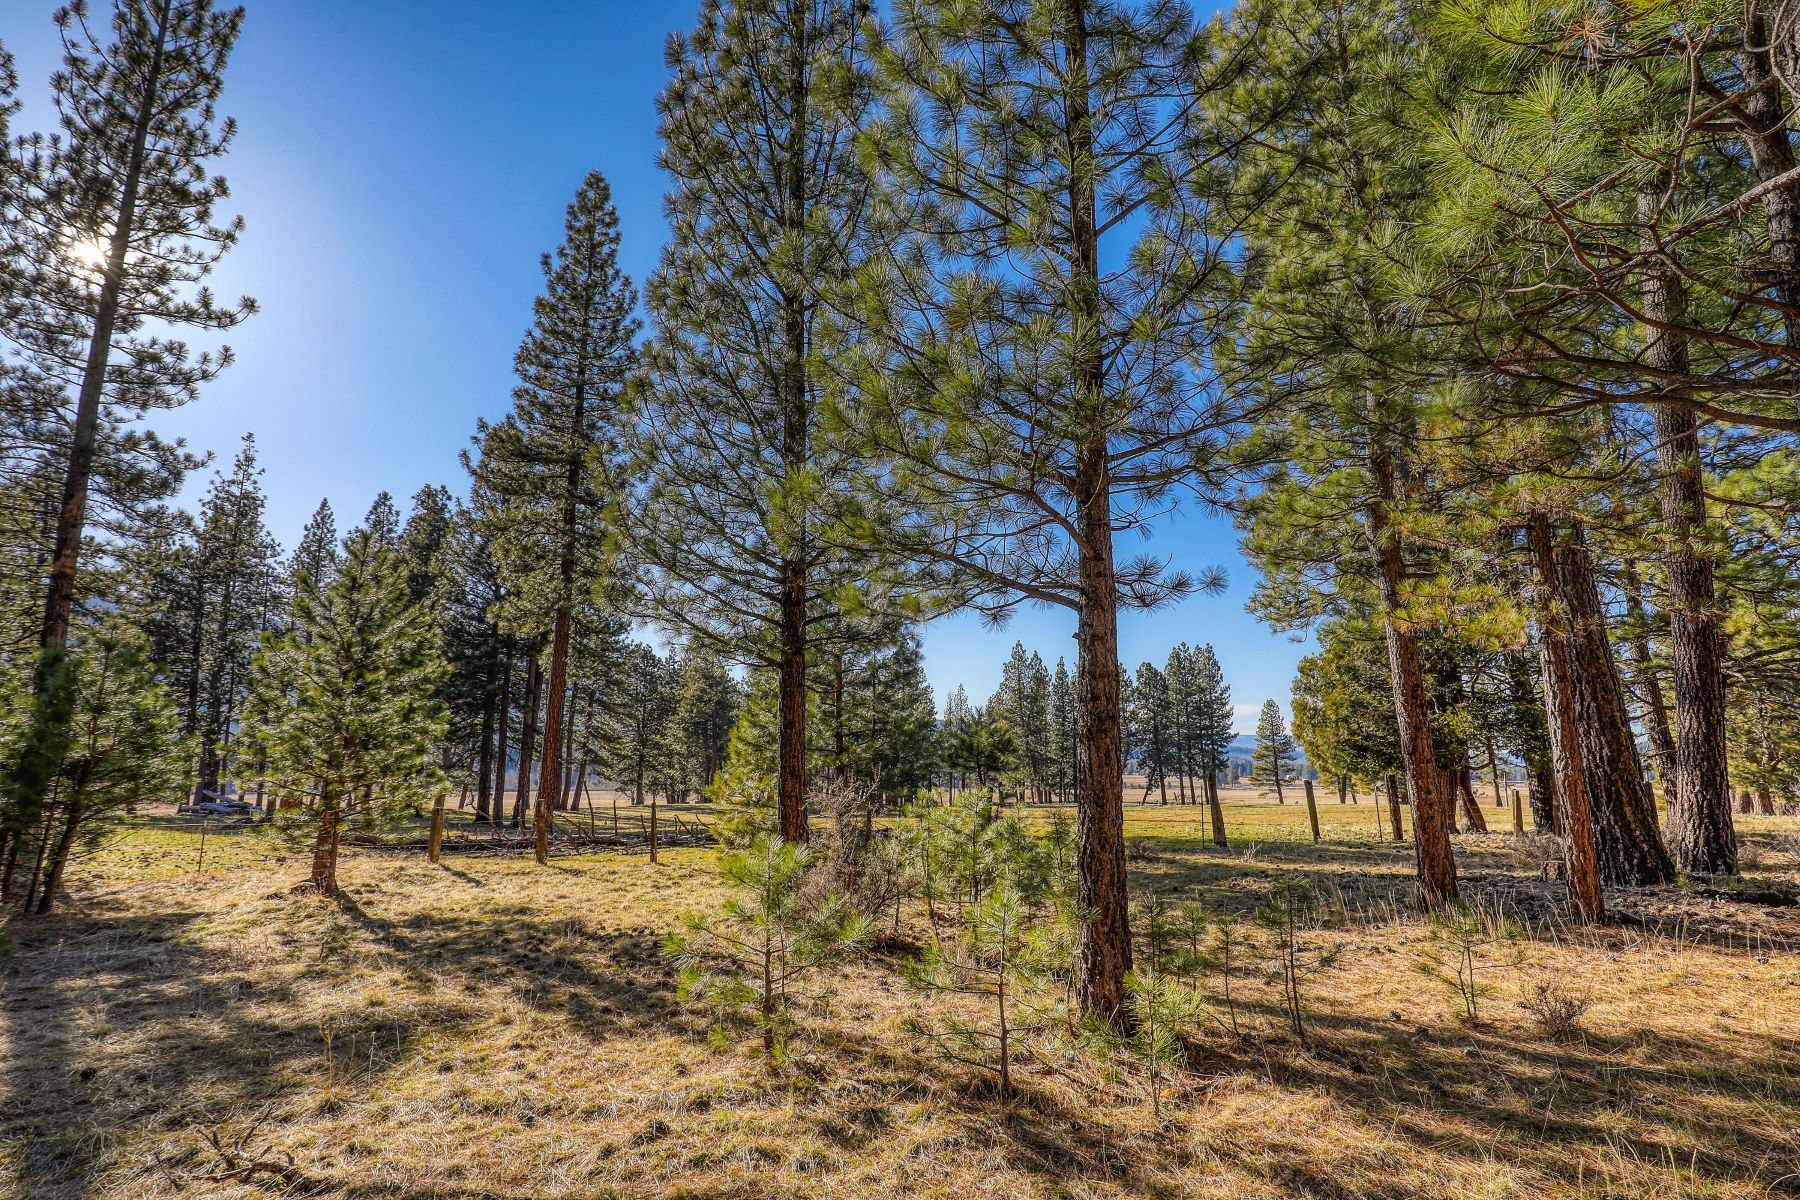 Property for Active at 709 Redtail Loop Clio California 96106 709 Redtail Loop Clio, California 96106 United States